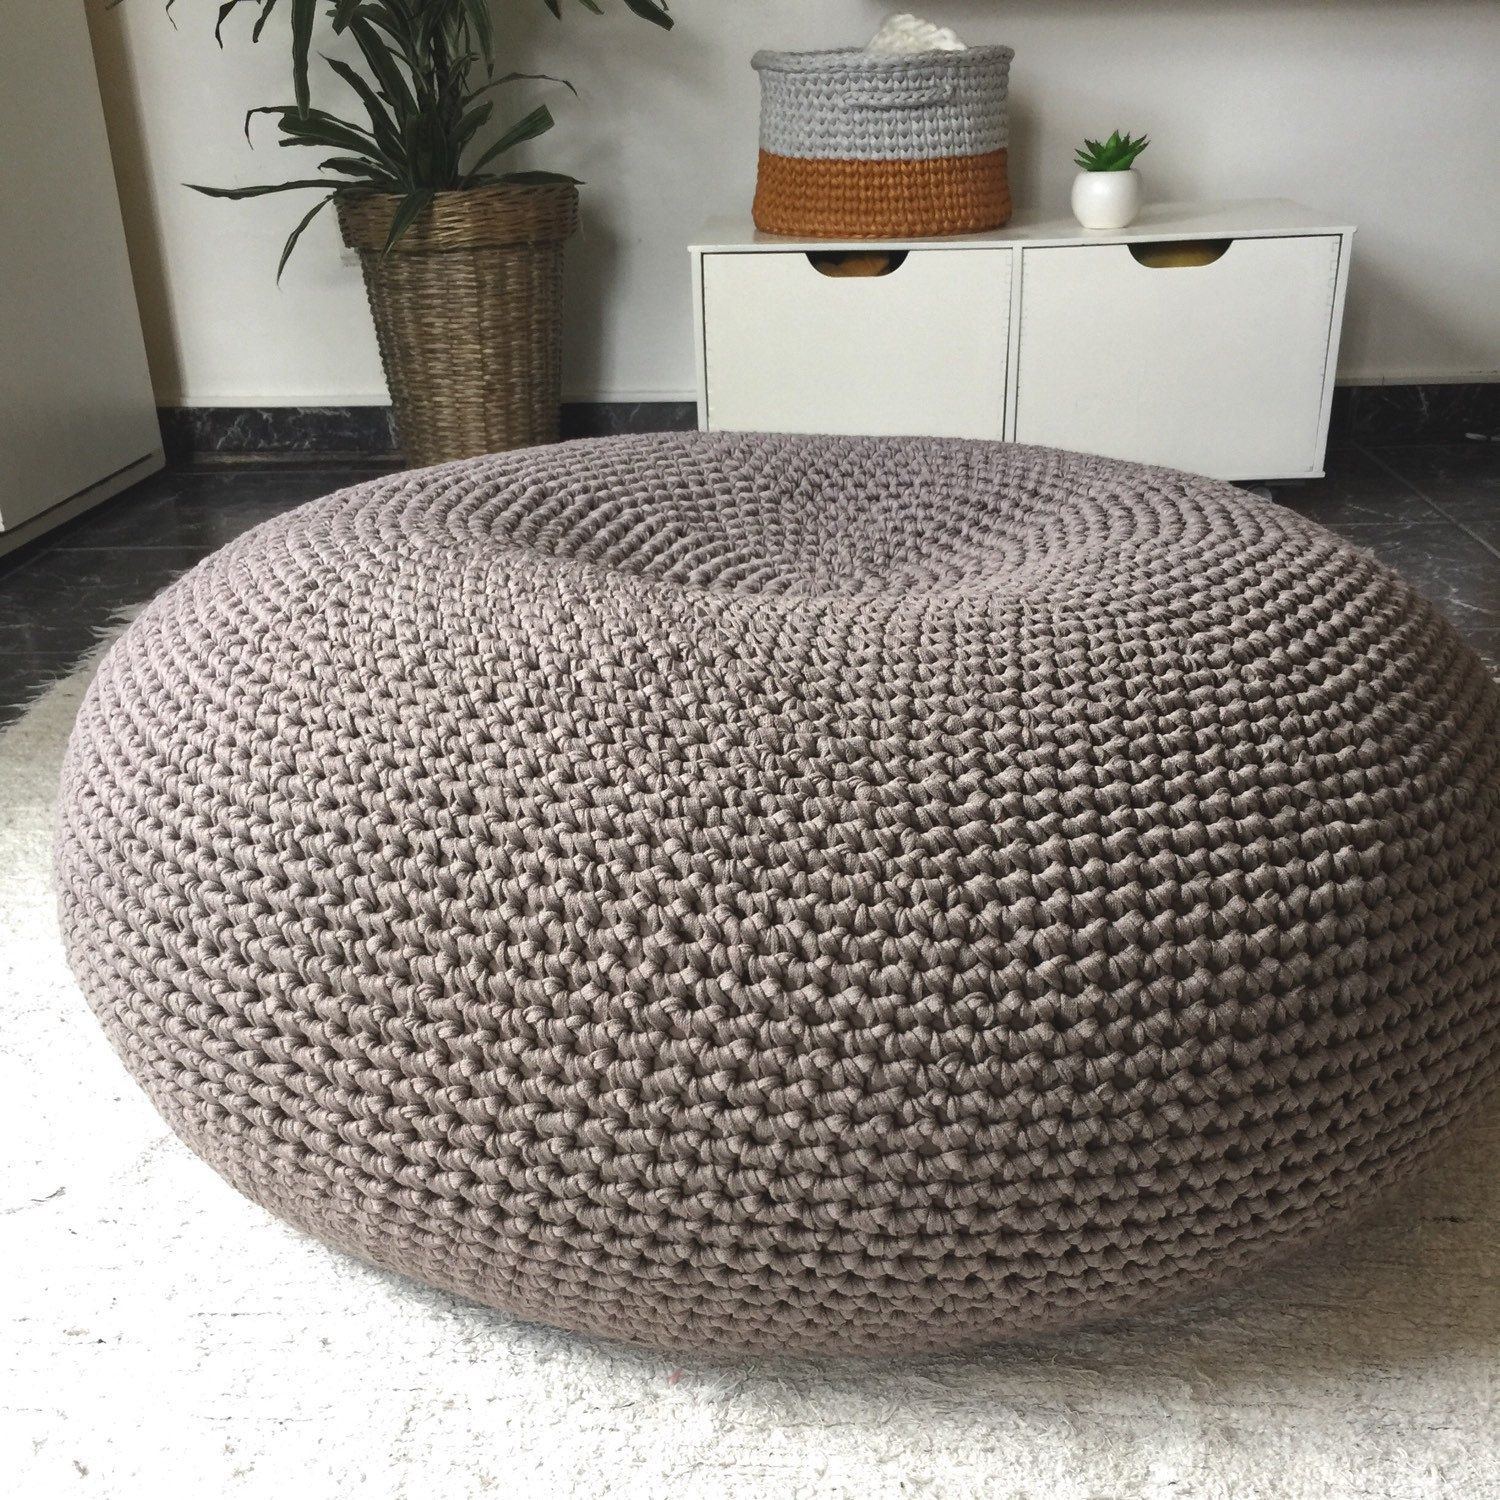 Large Pouf Ottoman Awesome Giant Pouf Ottomanlarge Round Ottomangiant Floor Pillowjumbo Decorating Inspiration